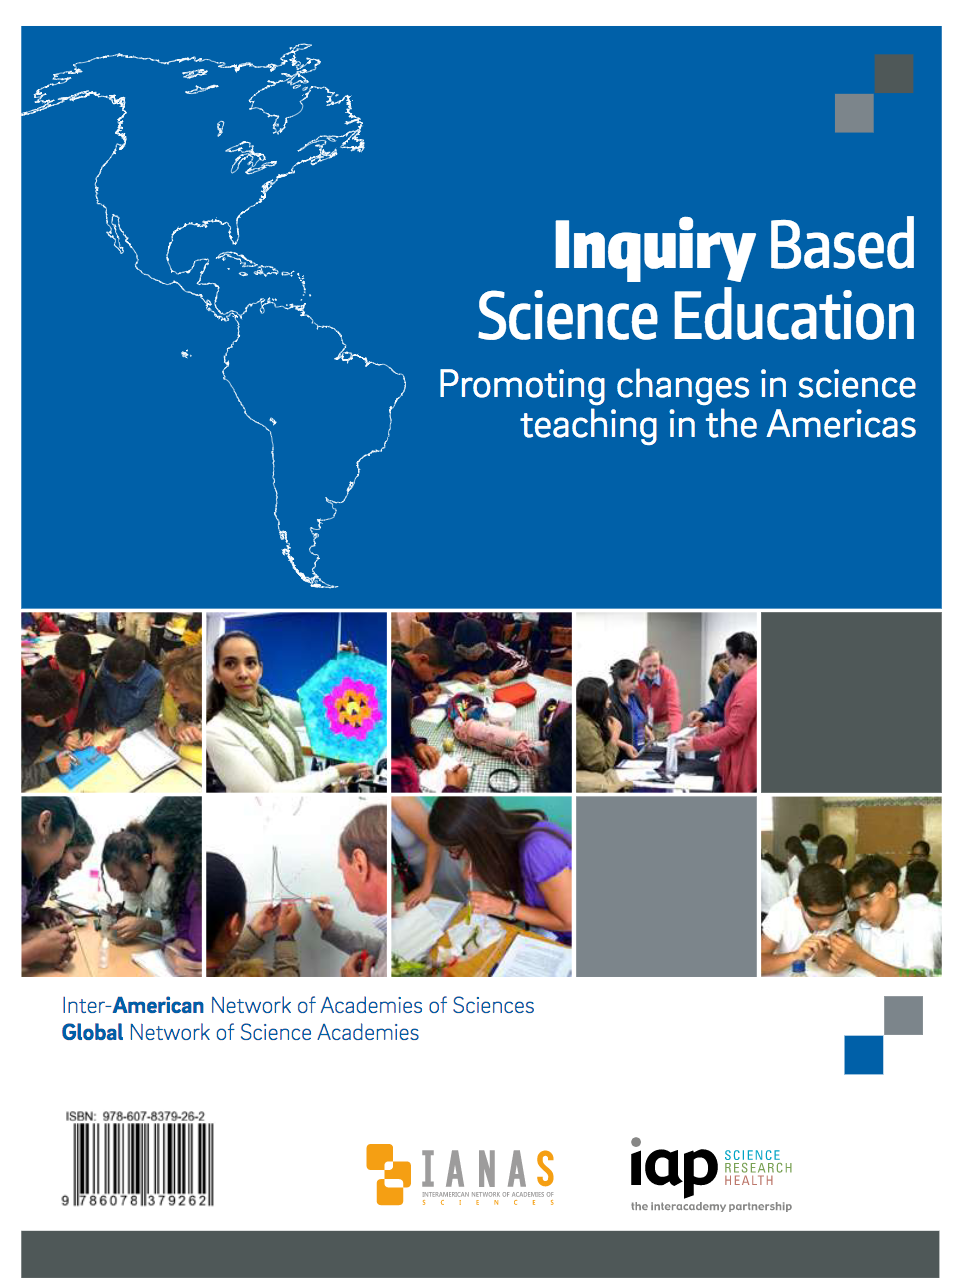 Inquiry Based Sci Edu cover